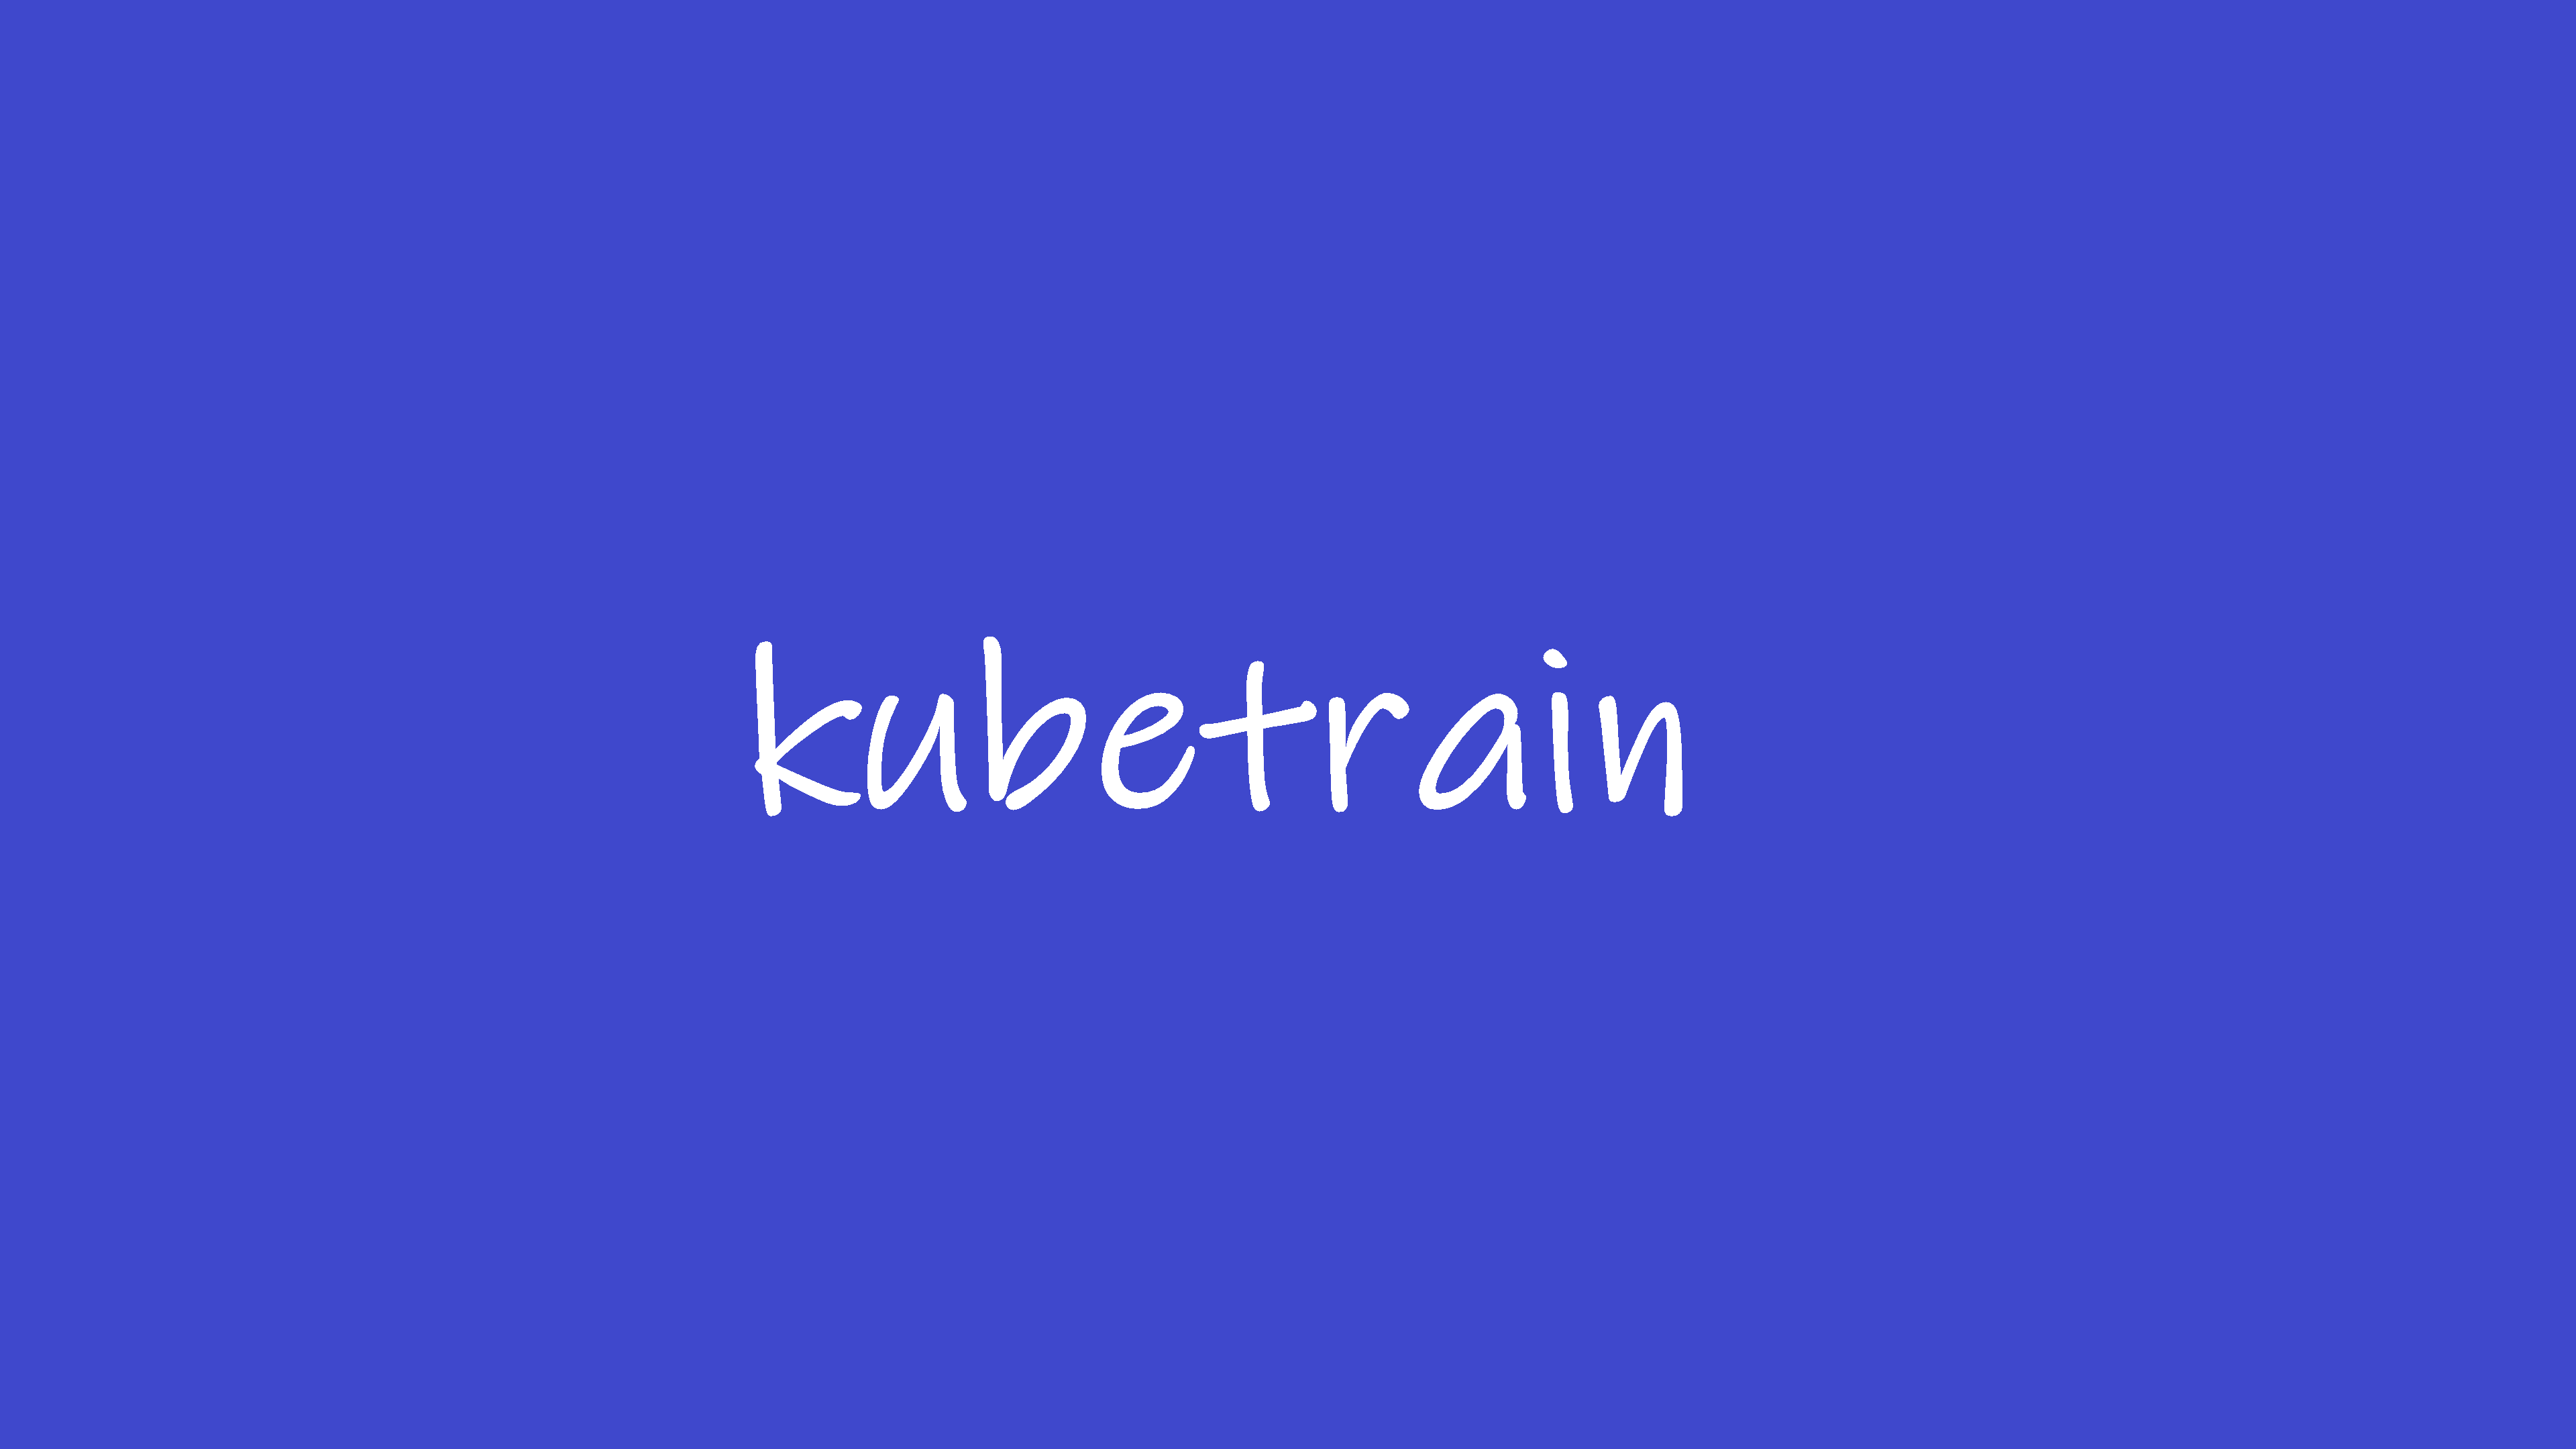 Kubernetes Practicals / Hands on - Includes CKA (Certified Kubernetes Administrator) topics